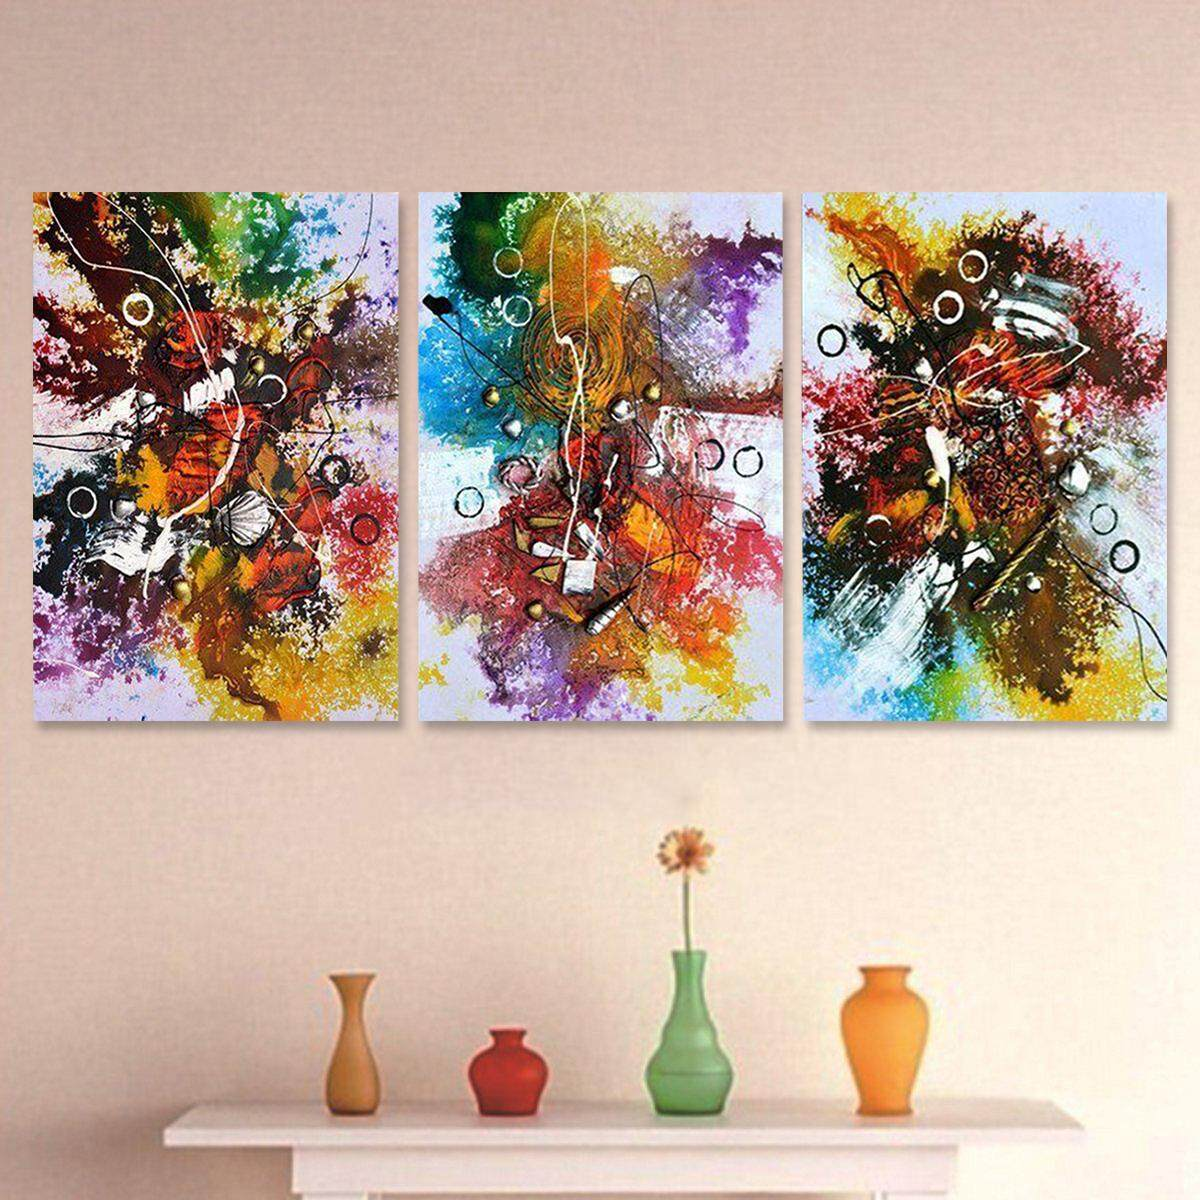 3Pcs Abstract Colorful Tree Canvas Print Art Painting Picture Home Decor